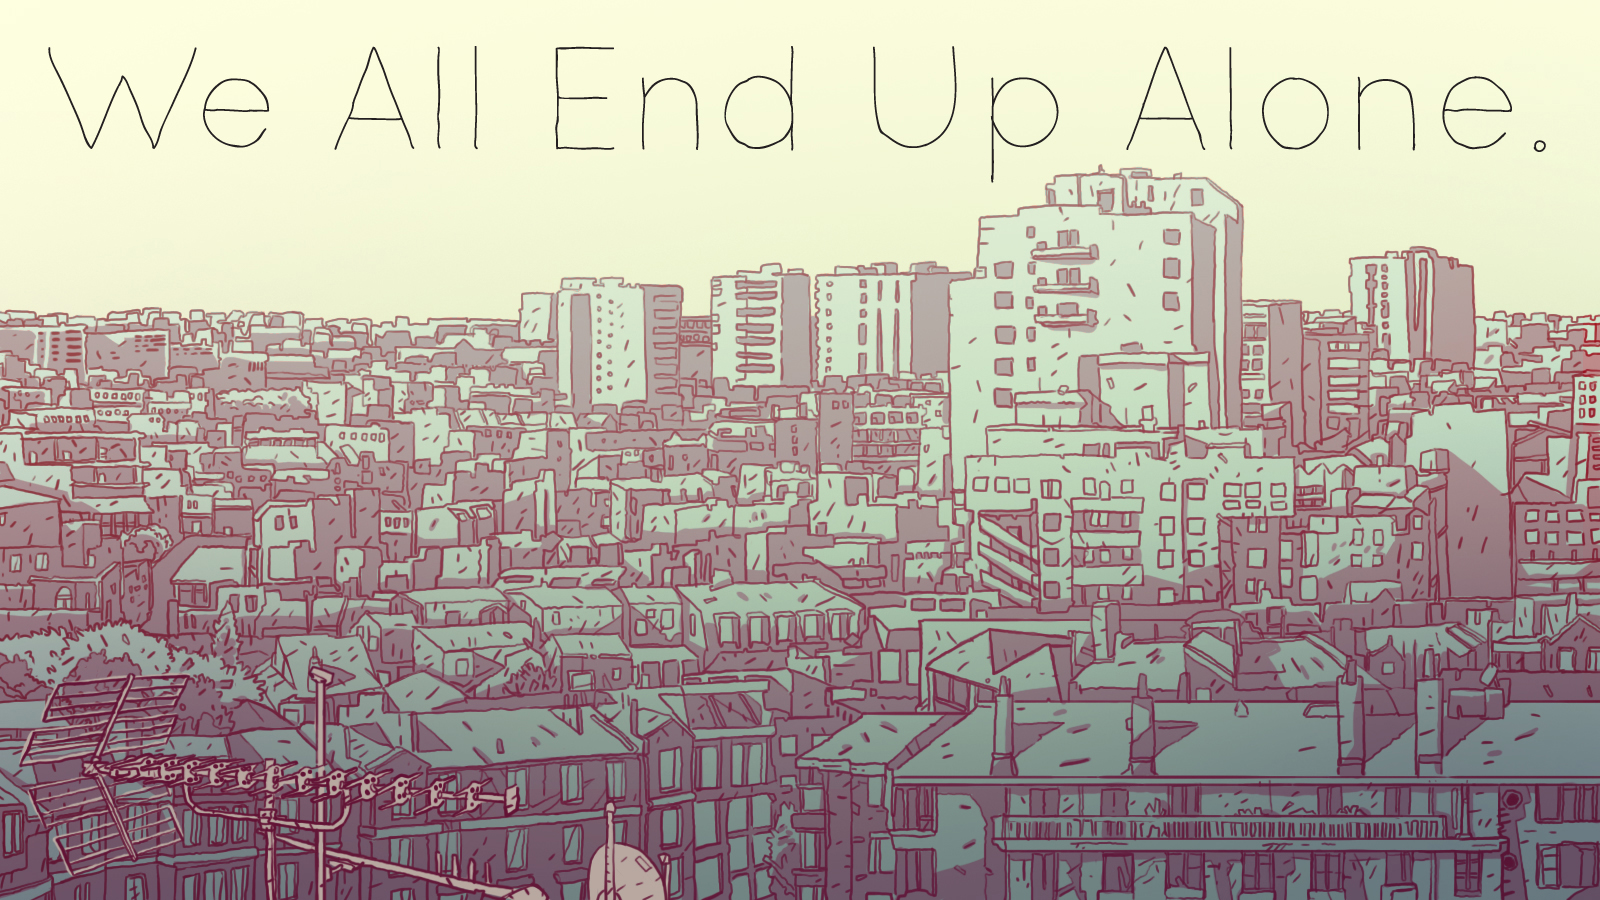 We All End Up Alone